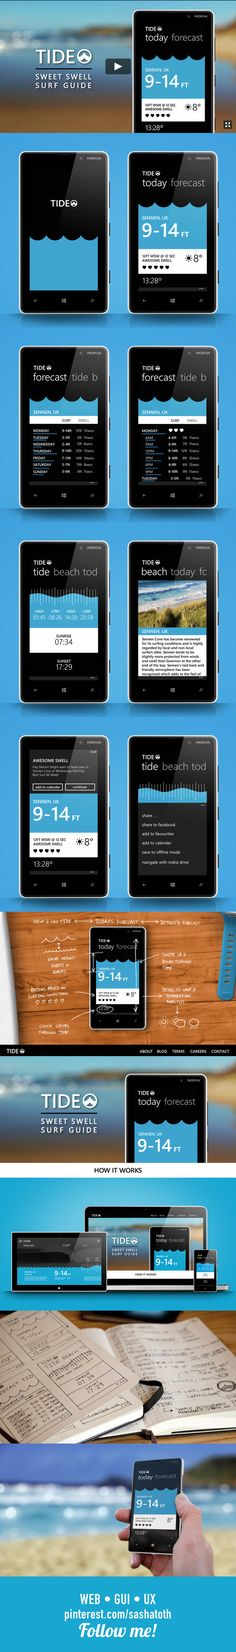 Tide is a Surfing forecast app Mobile Ui Design, Web Ui Design, Branding Design, Graphic Design, Apps, Swell Surf, Ux Wireframe, Ui Web, User Interface Design